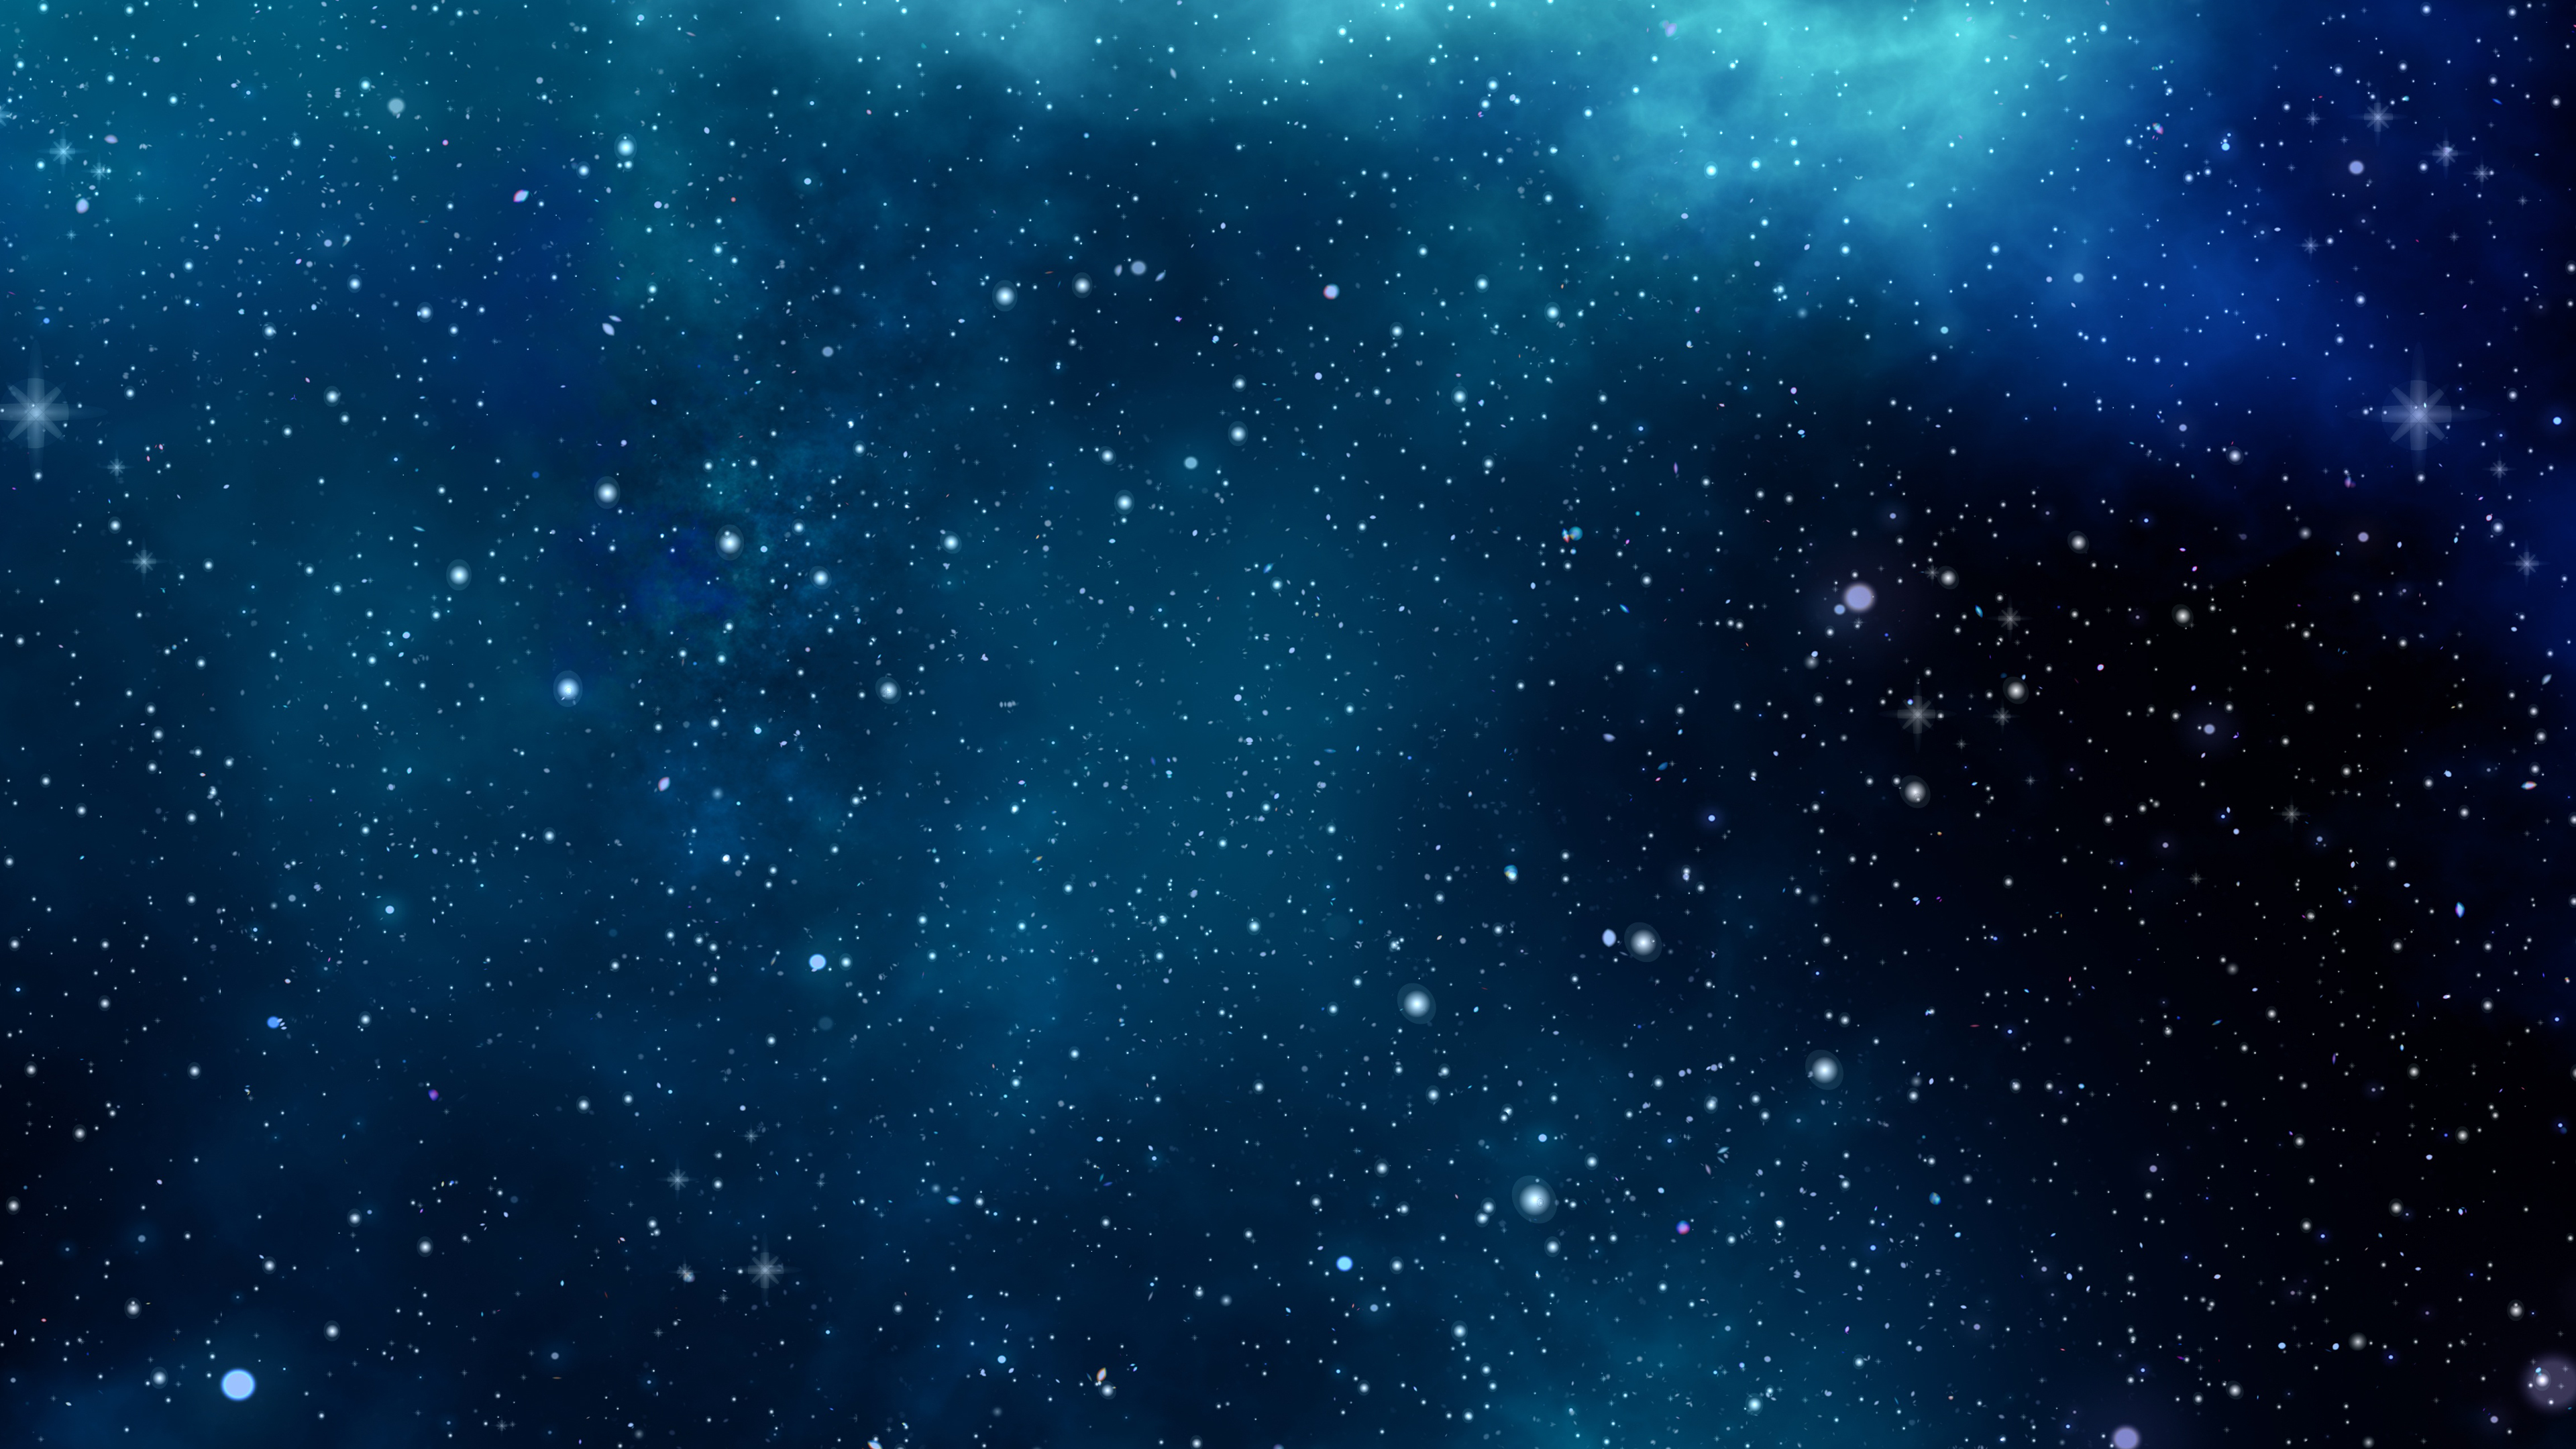 4k Blue Space Wallpaper Hd